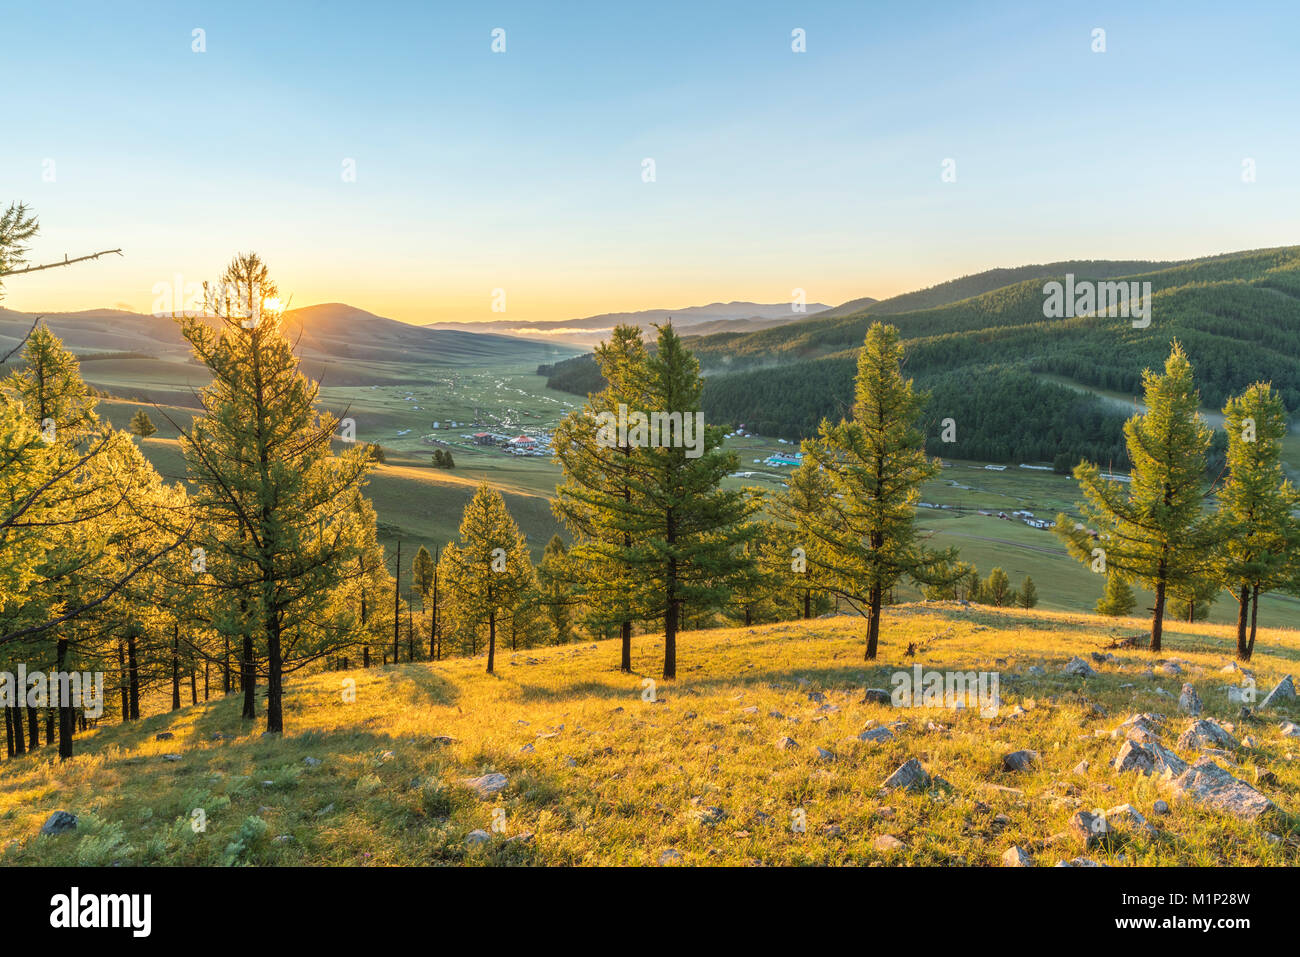 Fir trees in the morning light above Tsenkher Hot Springs, North Hangay province, Mongolia, Central Asia, Asia - Stock Image